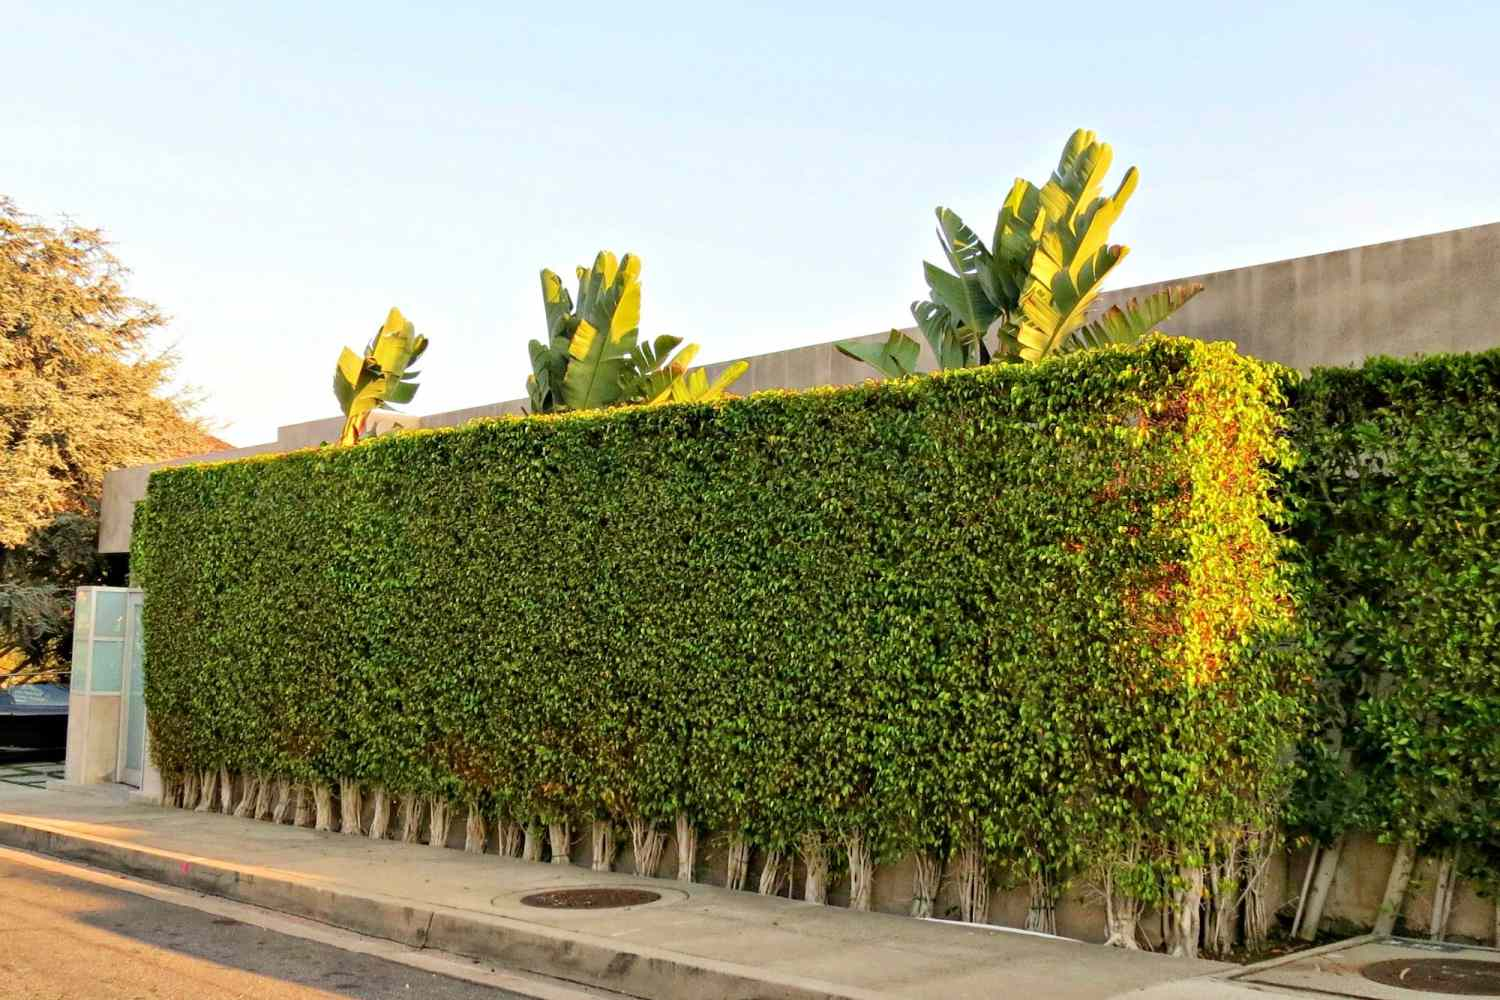 Privacy shrubs growing near a road.